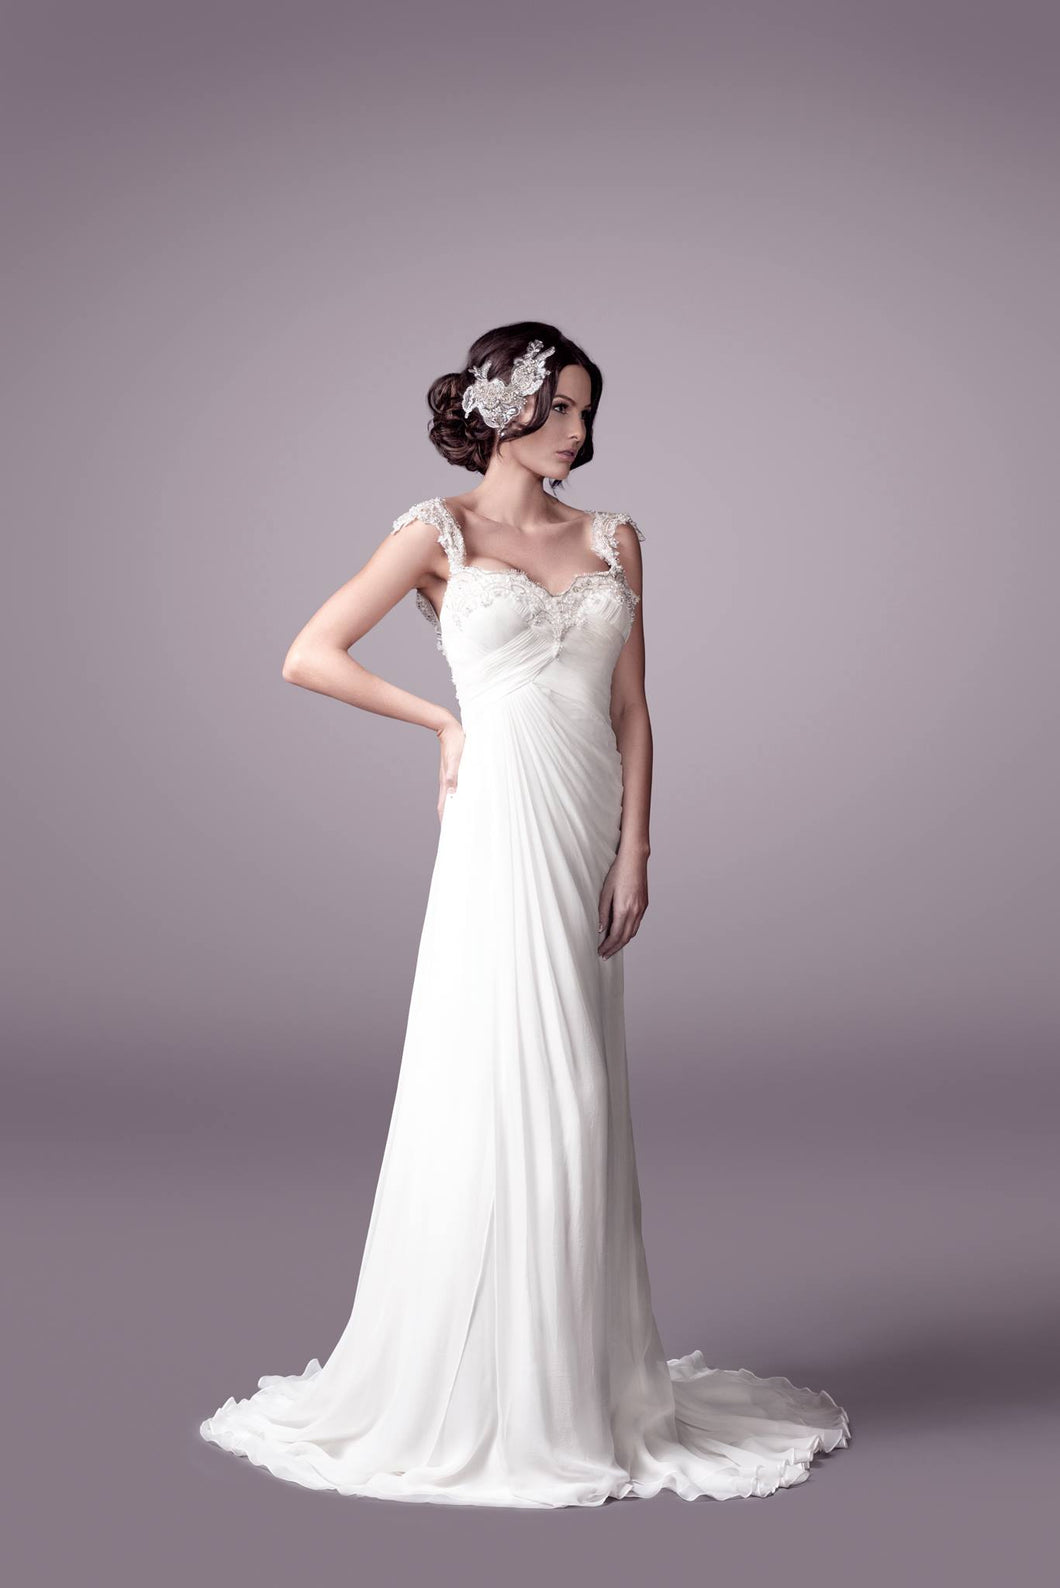 Adriana wedding dress bridal gown Perth 9302(F) (2)